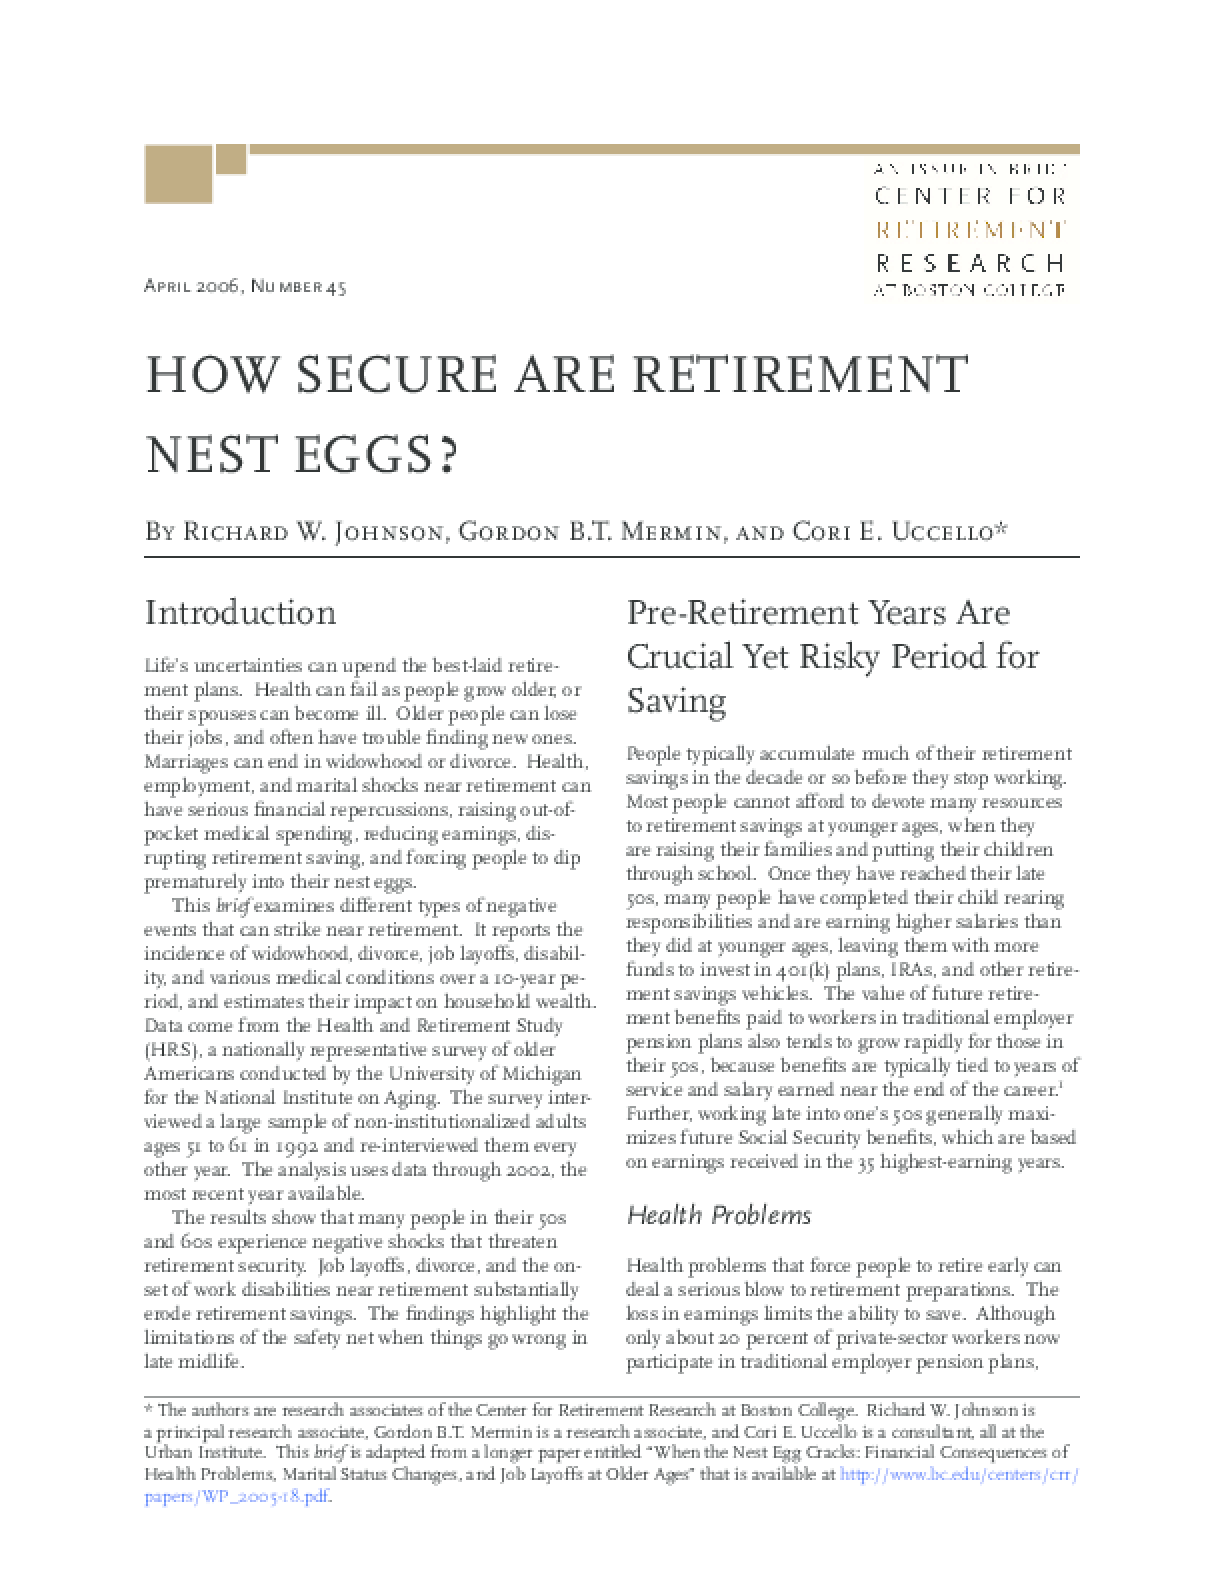 How Secure Are Retirement Nest Eggs?